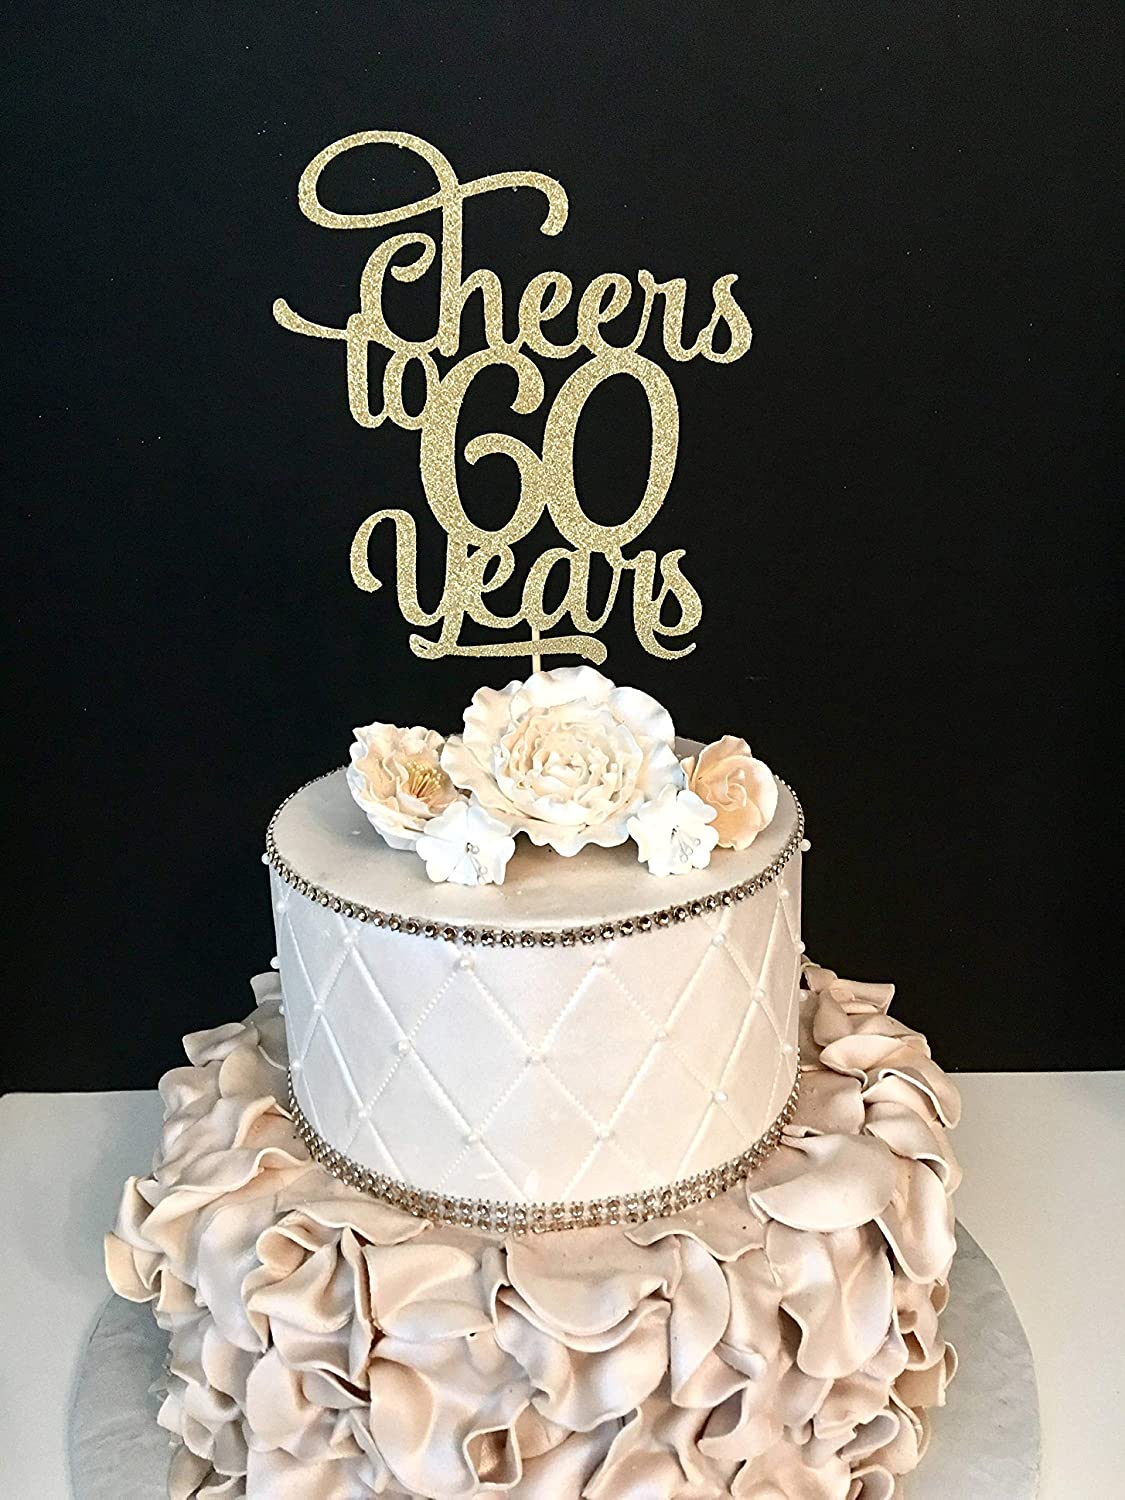 Pleasing Funlaugh Any Number Cheers To 60 Years Cheer 60Th Birthday Cake Funny Birthday Cards Online Fluifree Goldxyz